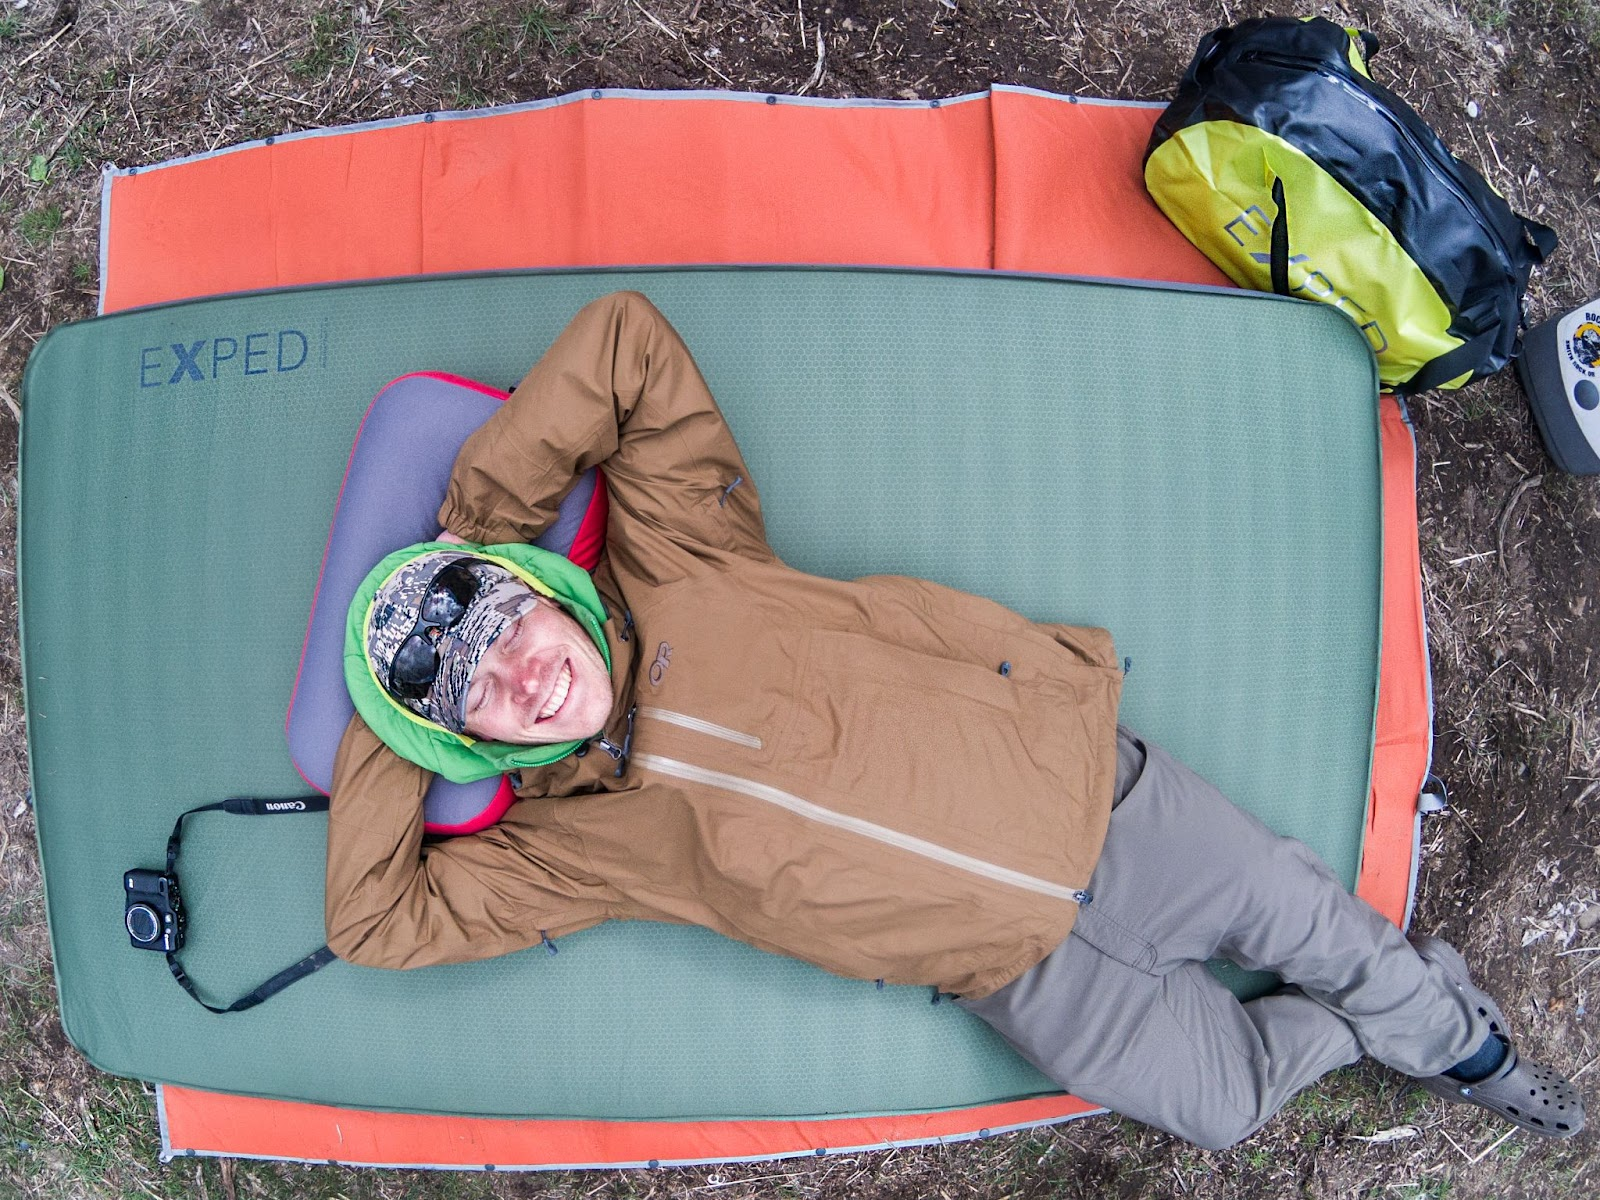 Camper laying down on the Exped Megamat Duo 10